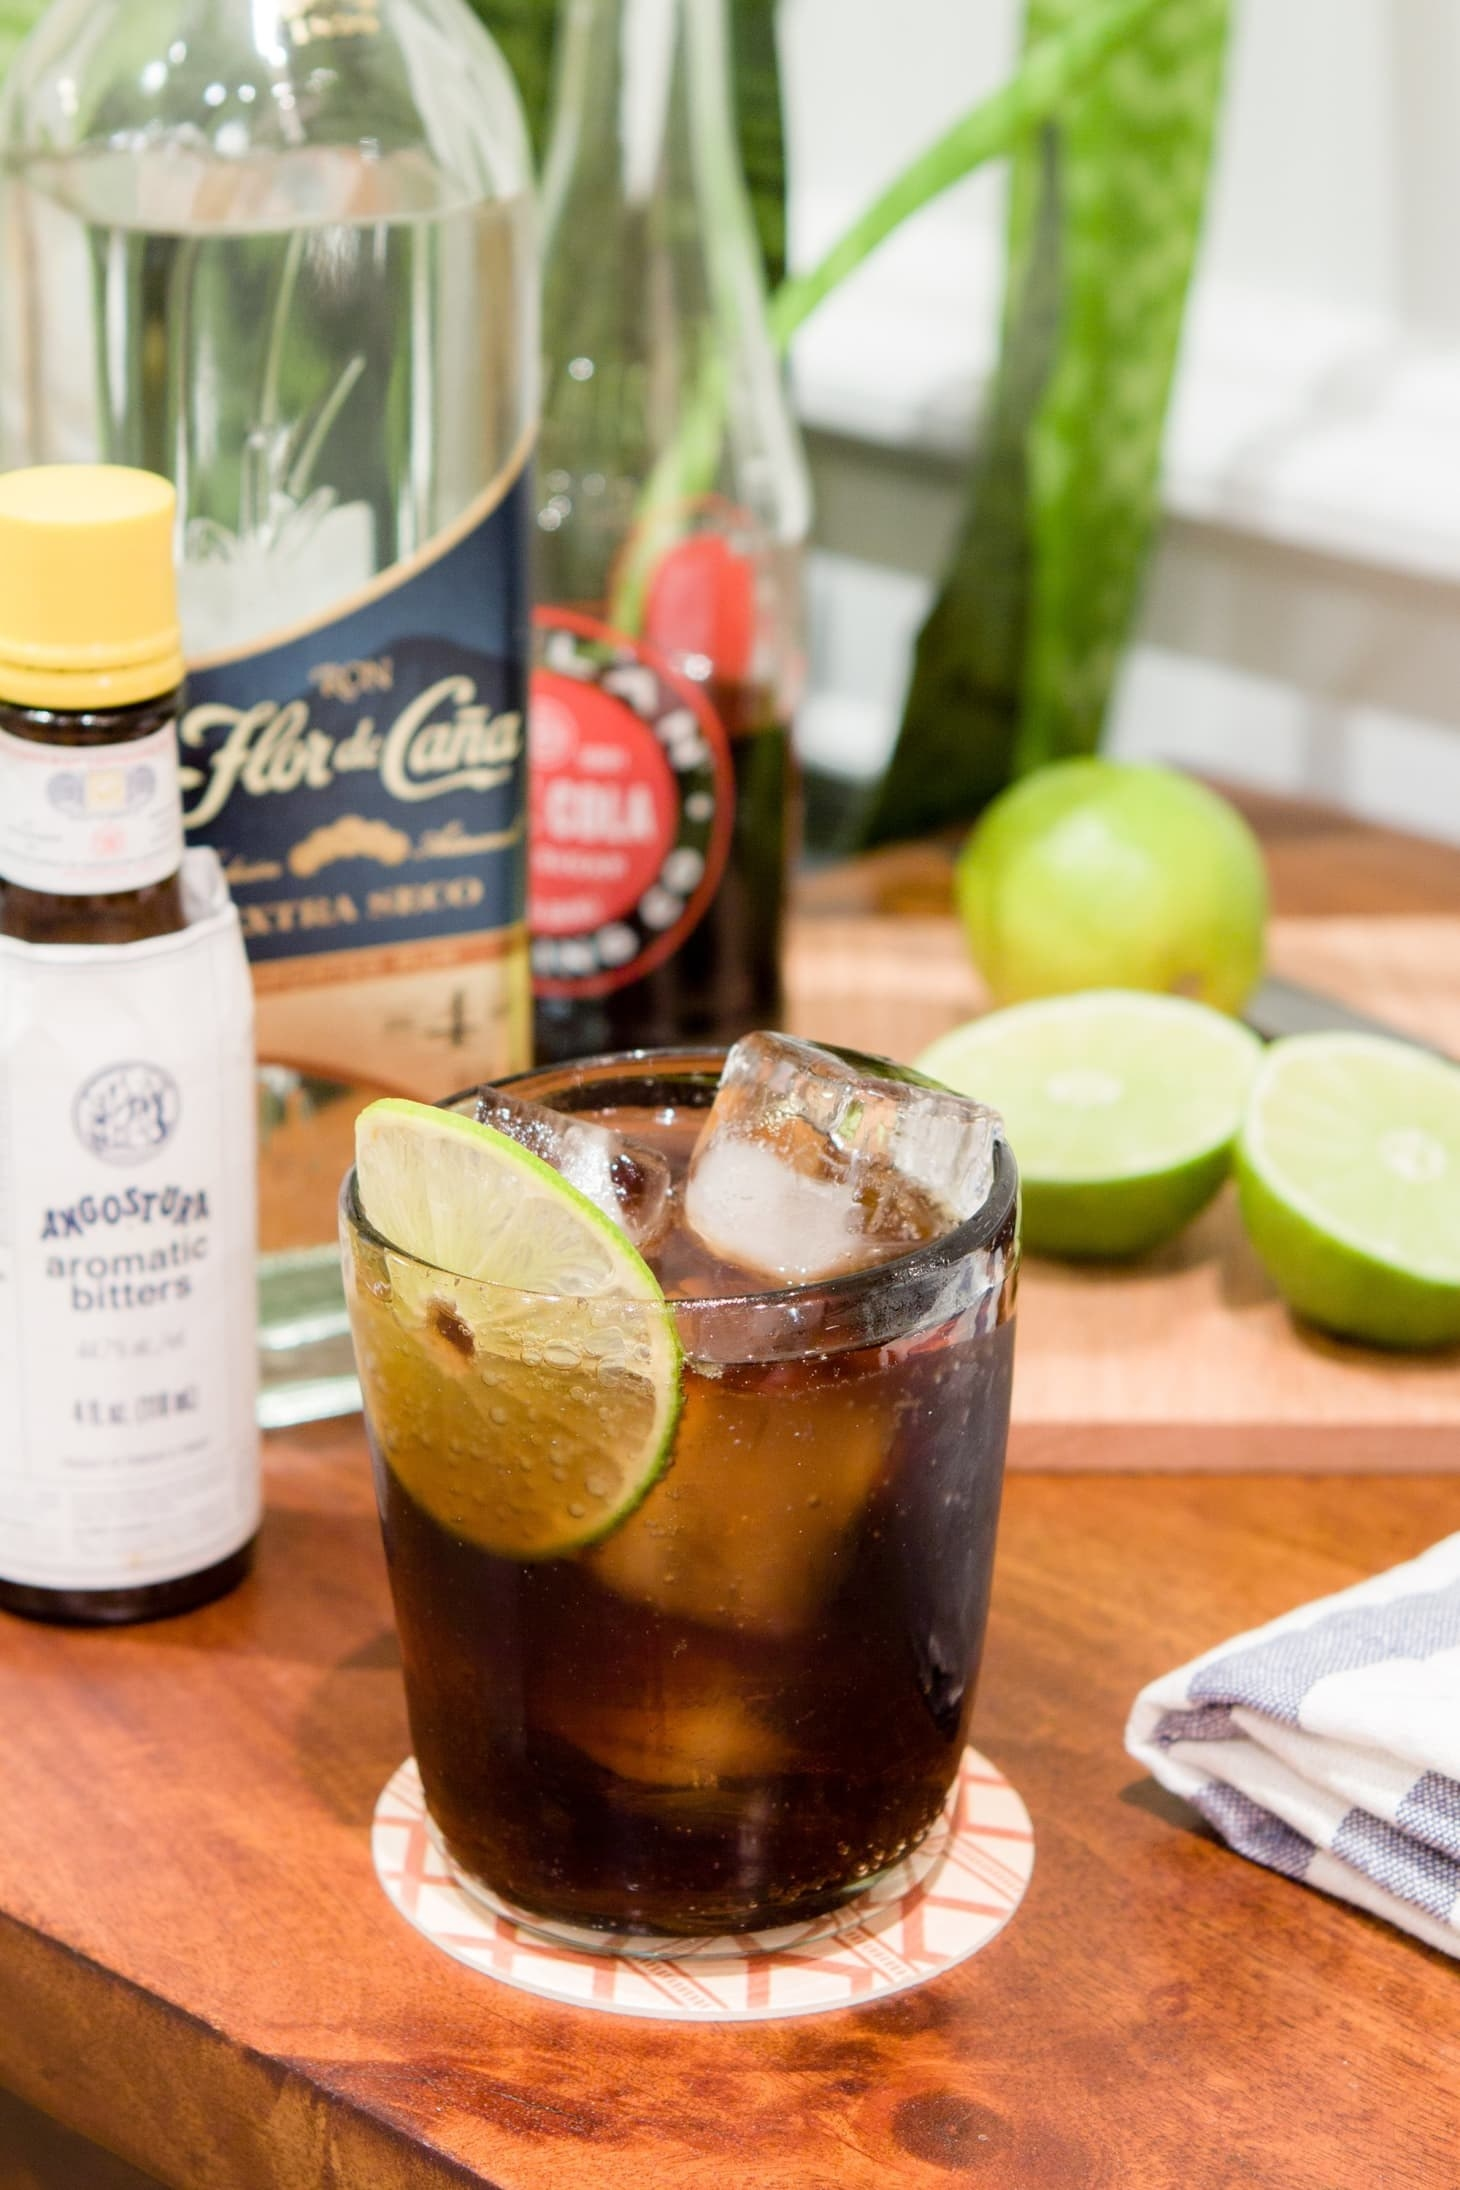 A Cuba libre cocktail garnished with lime.